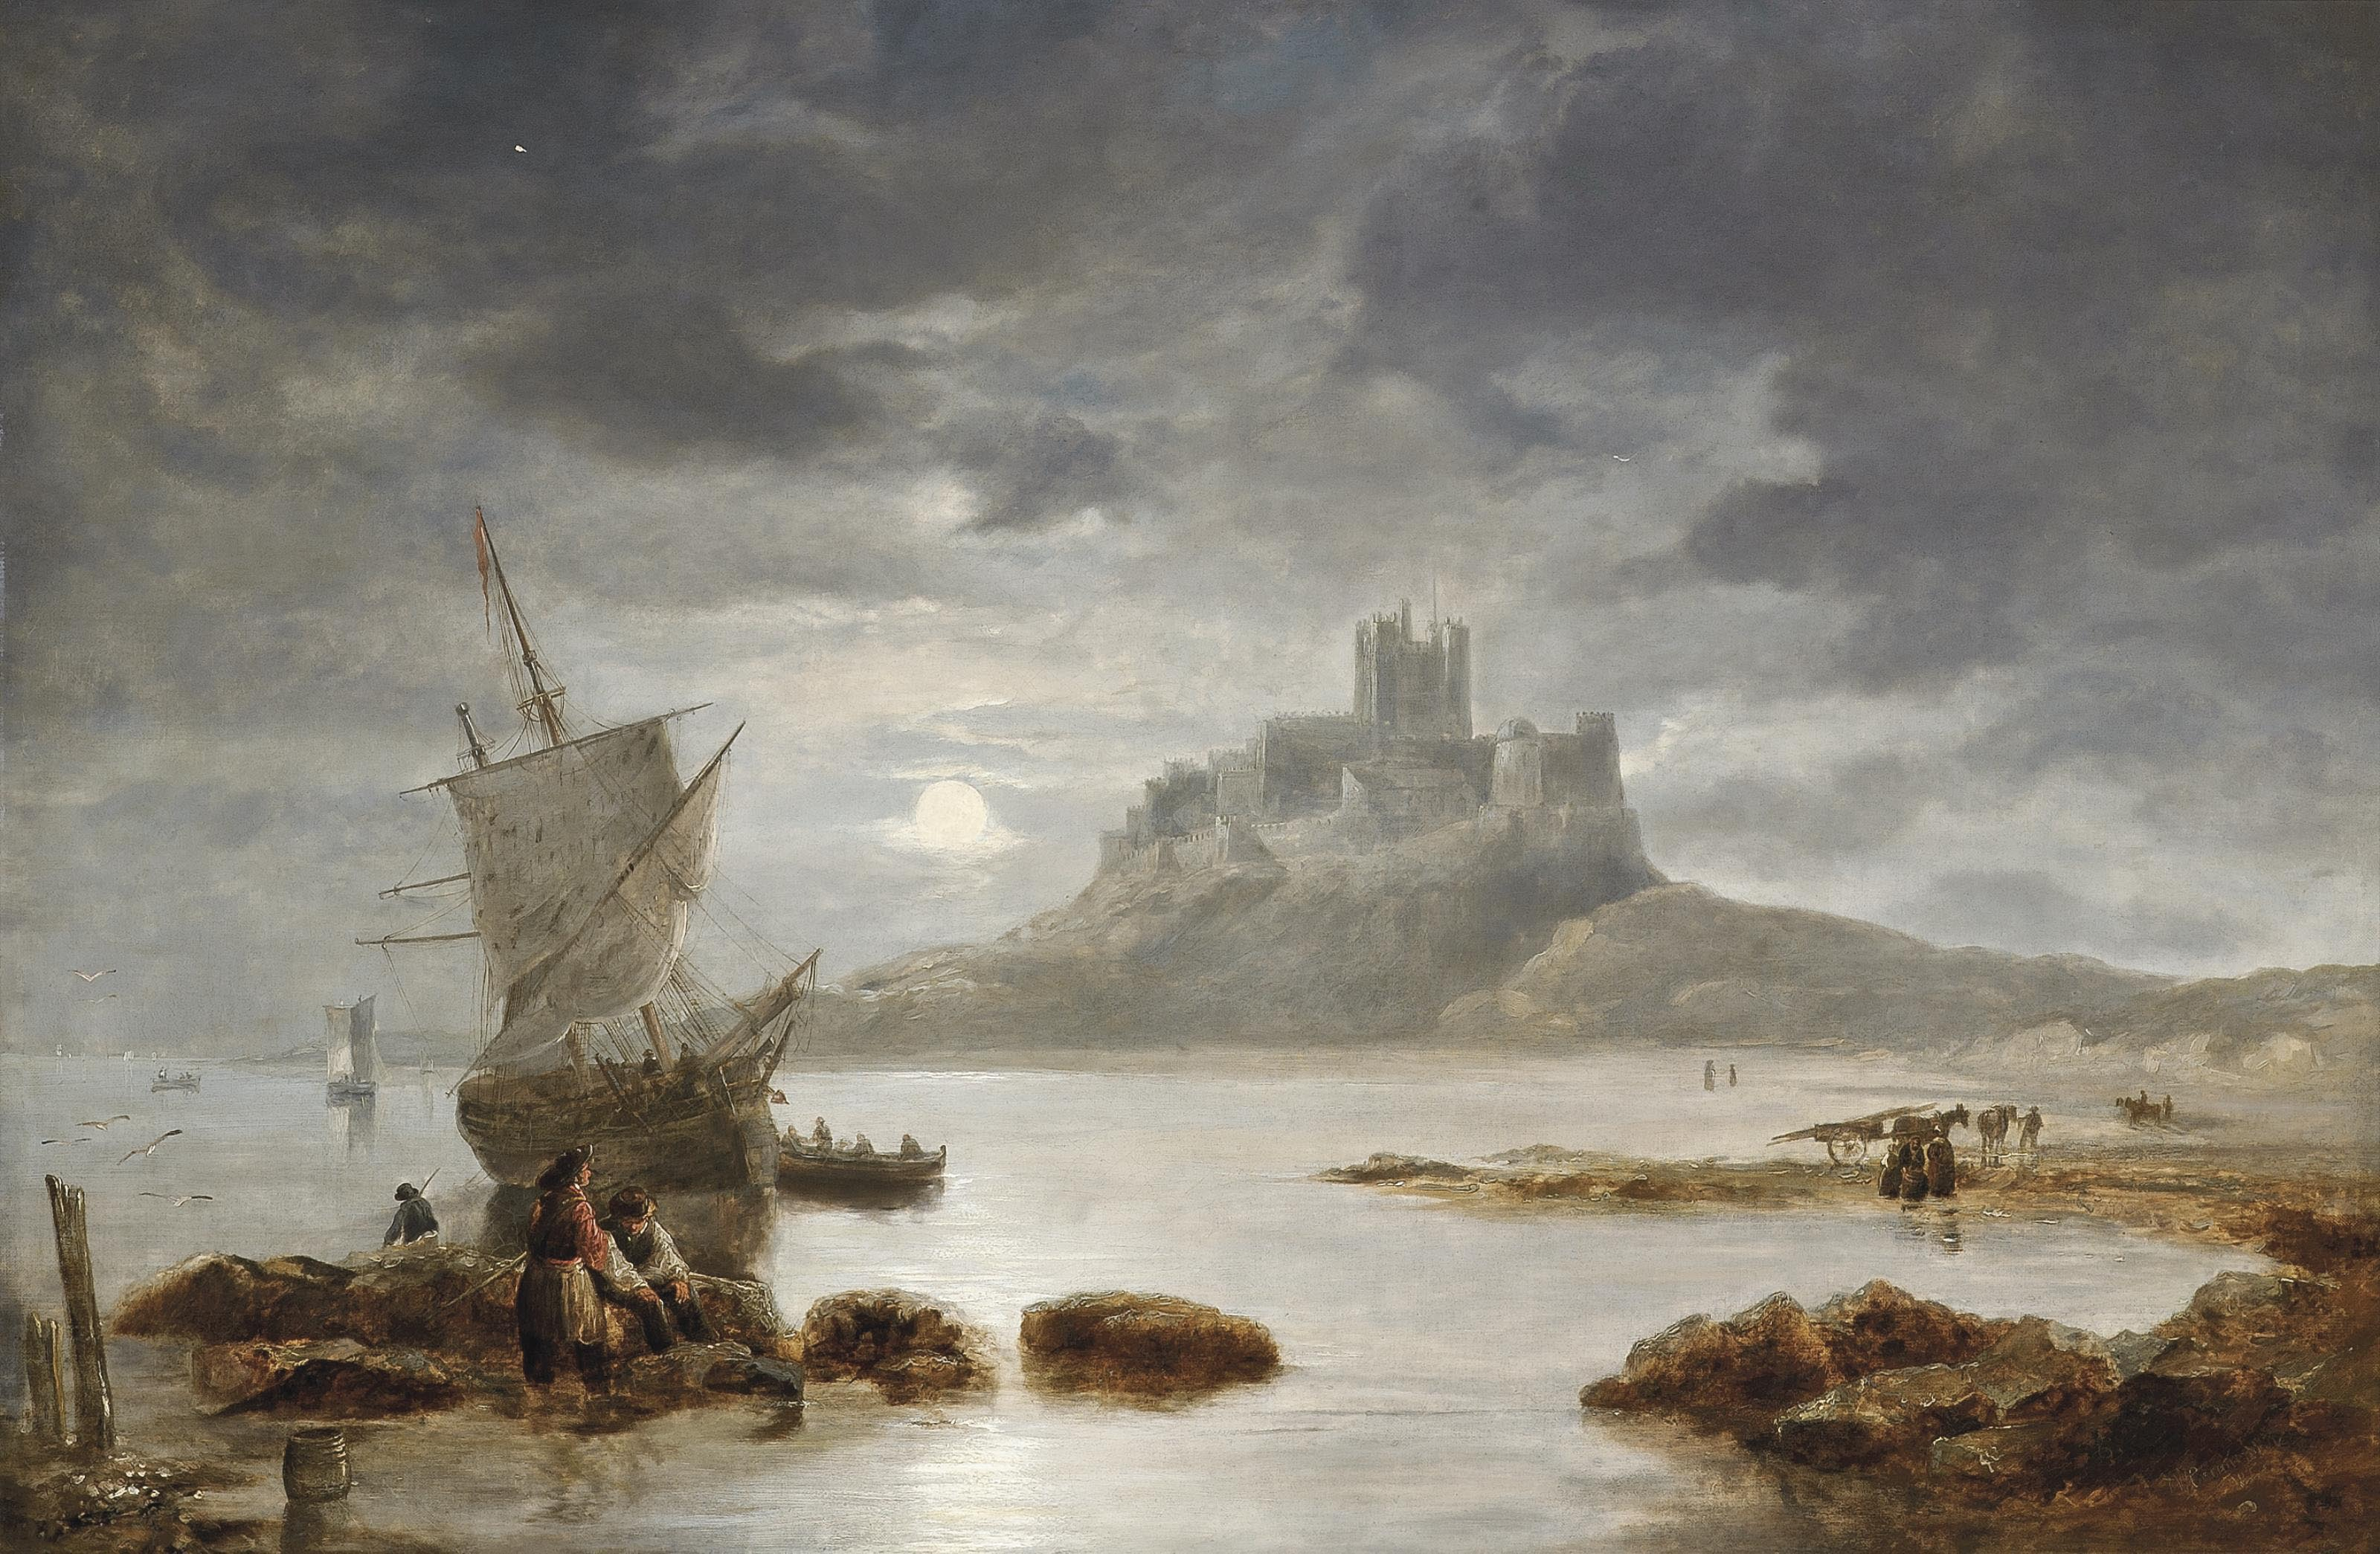 Bamburgh Castle by moonlight